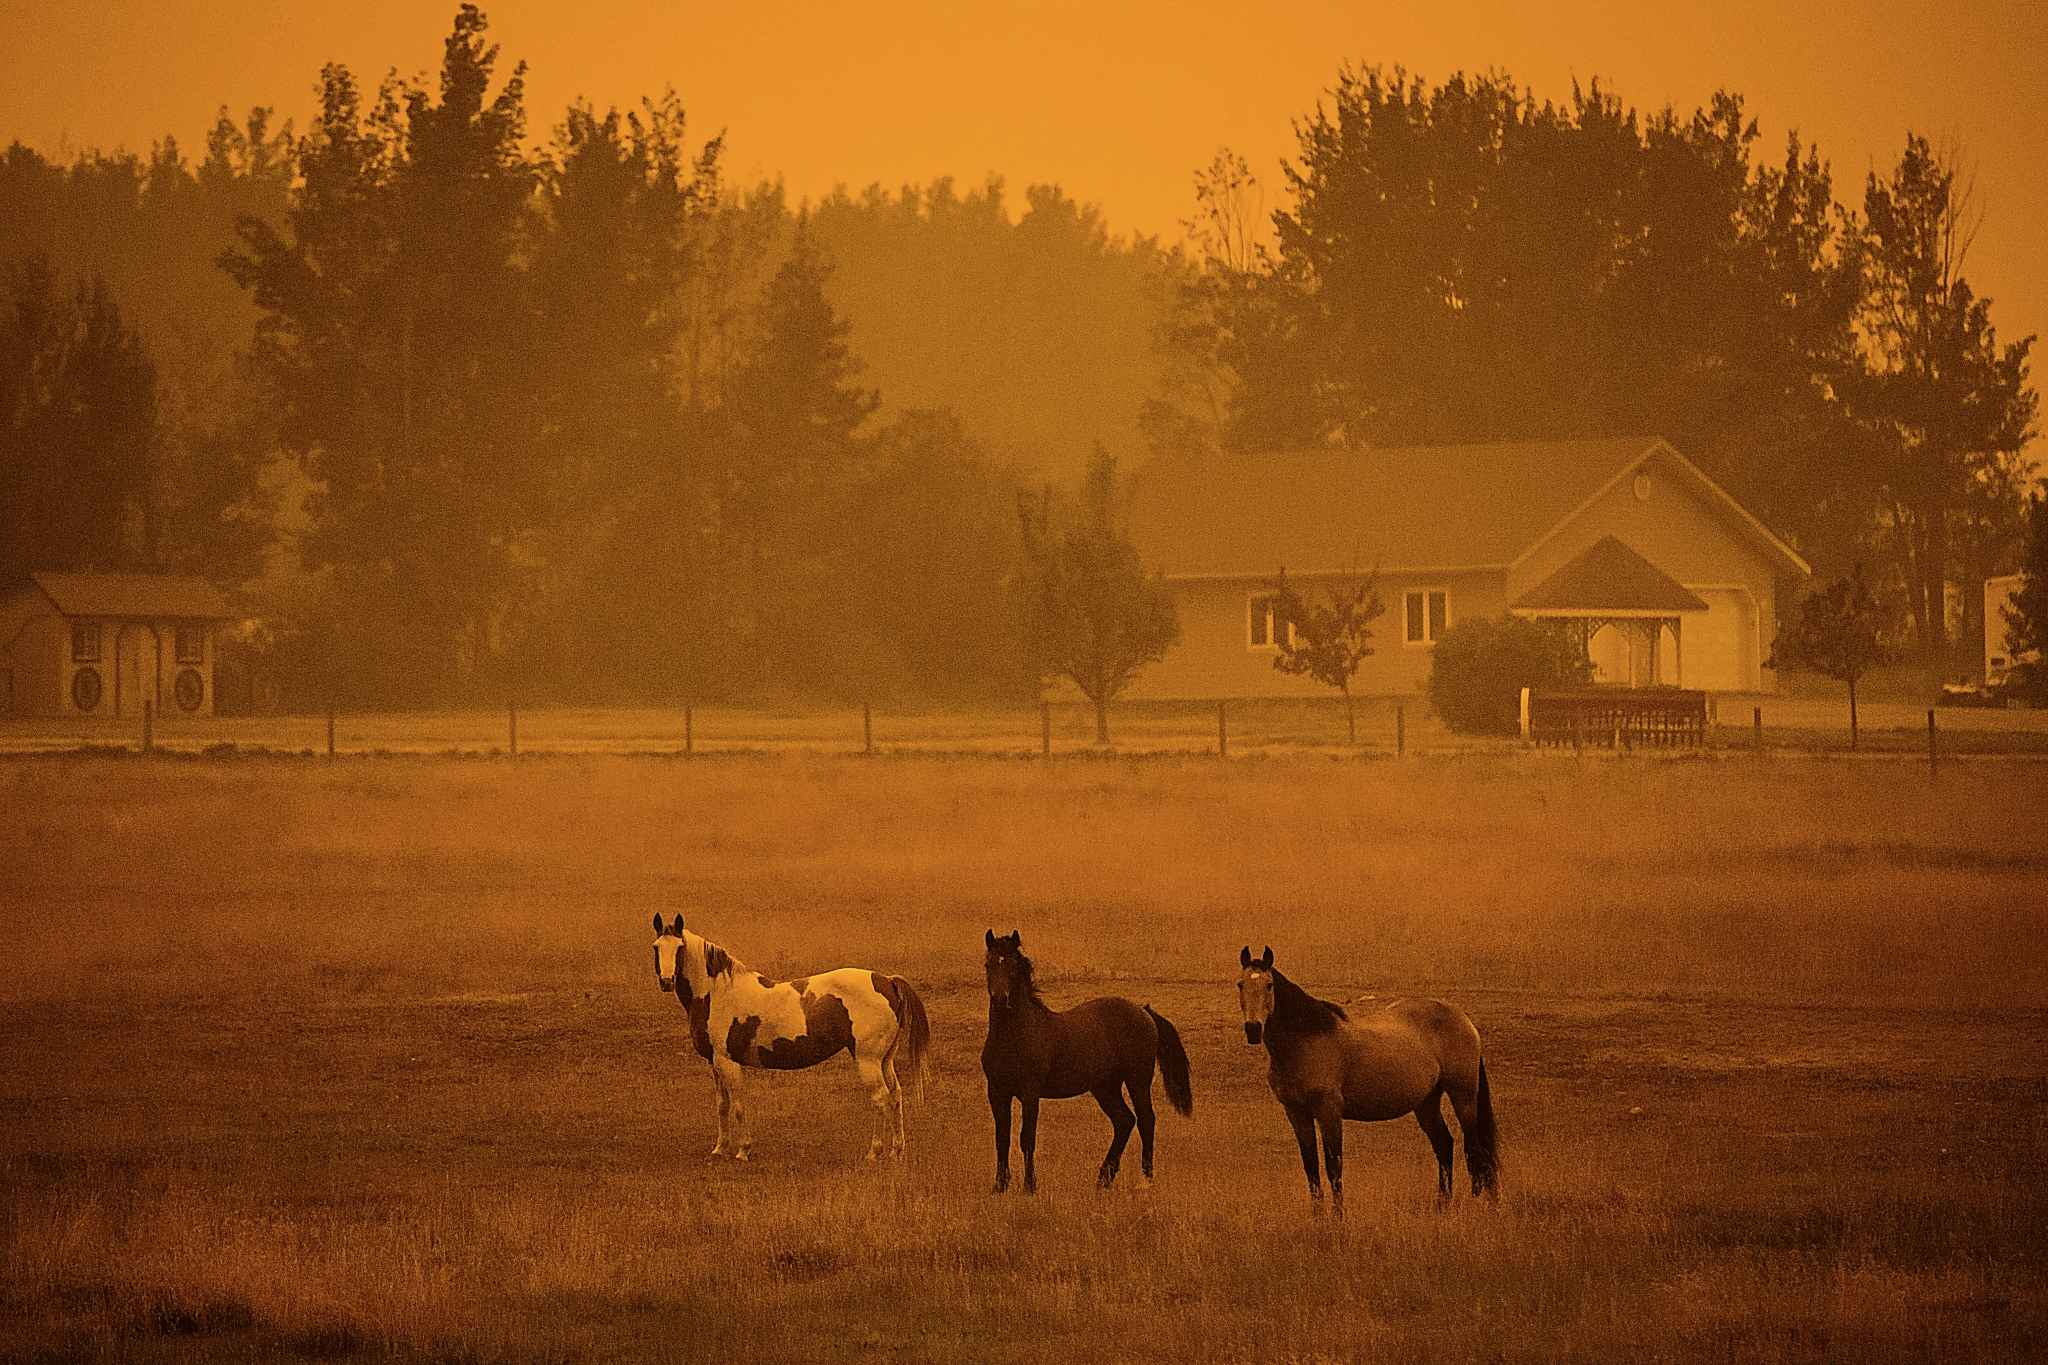 Thick smoke from wildfires fills the air and blocks out the sun as horses stand on a ranch just before 6 p.m. in Vanderhoof, B.C., on Wednesday. According to Environment Canada, sunset in the town on Wednesday was at 8:30 p.m. (Darryl Dyck / The Canadian Press)